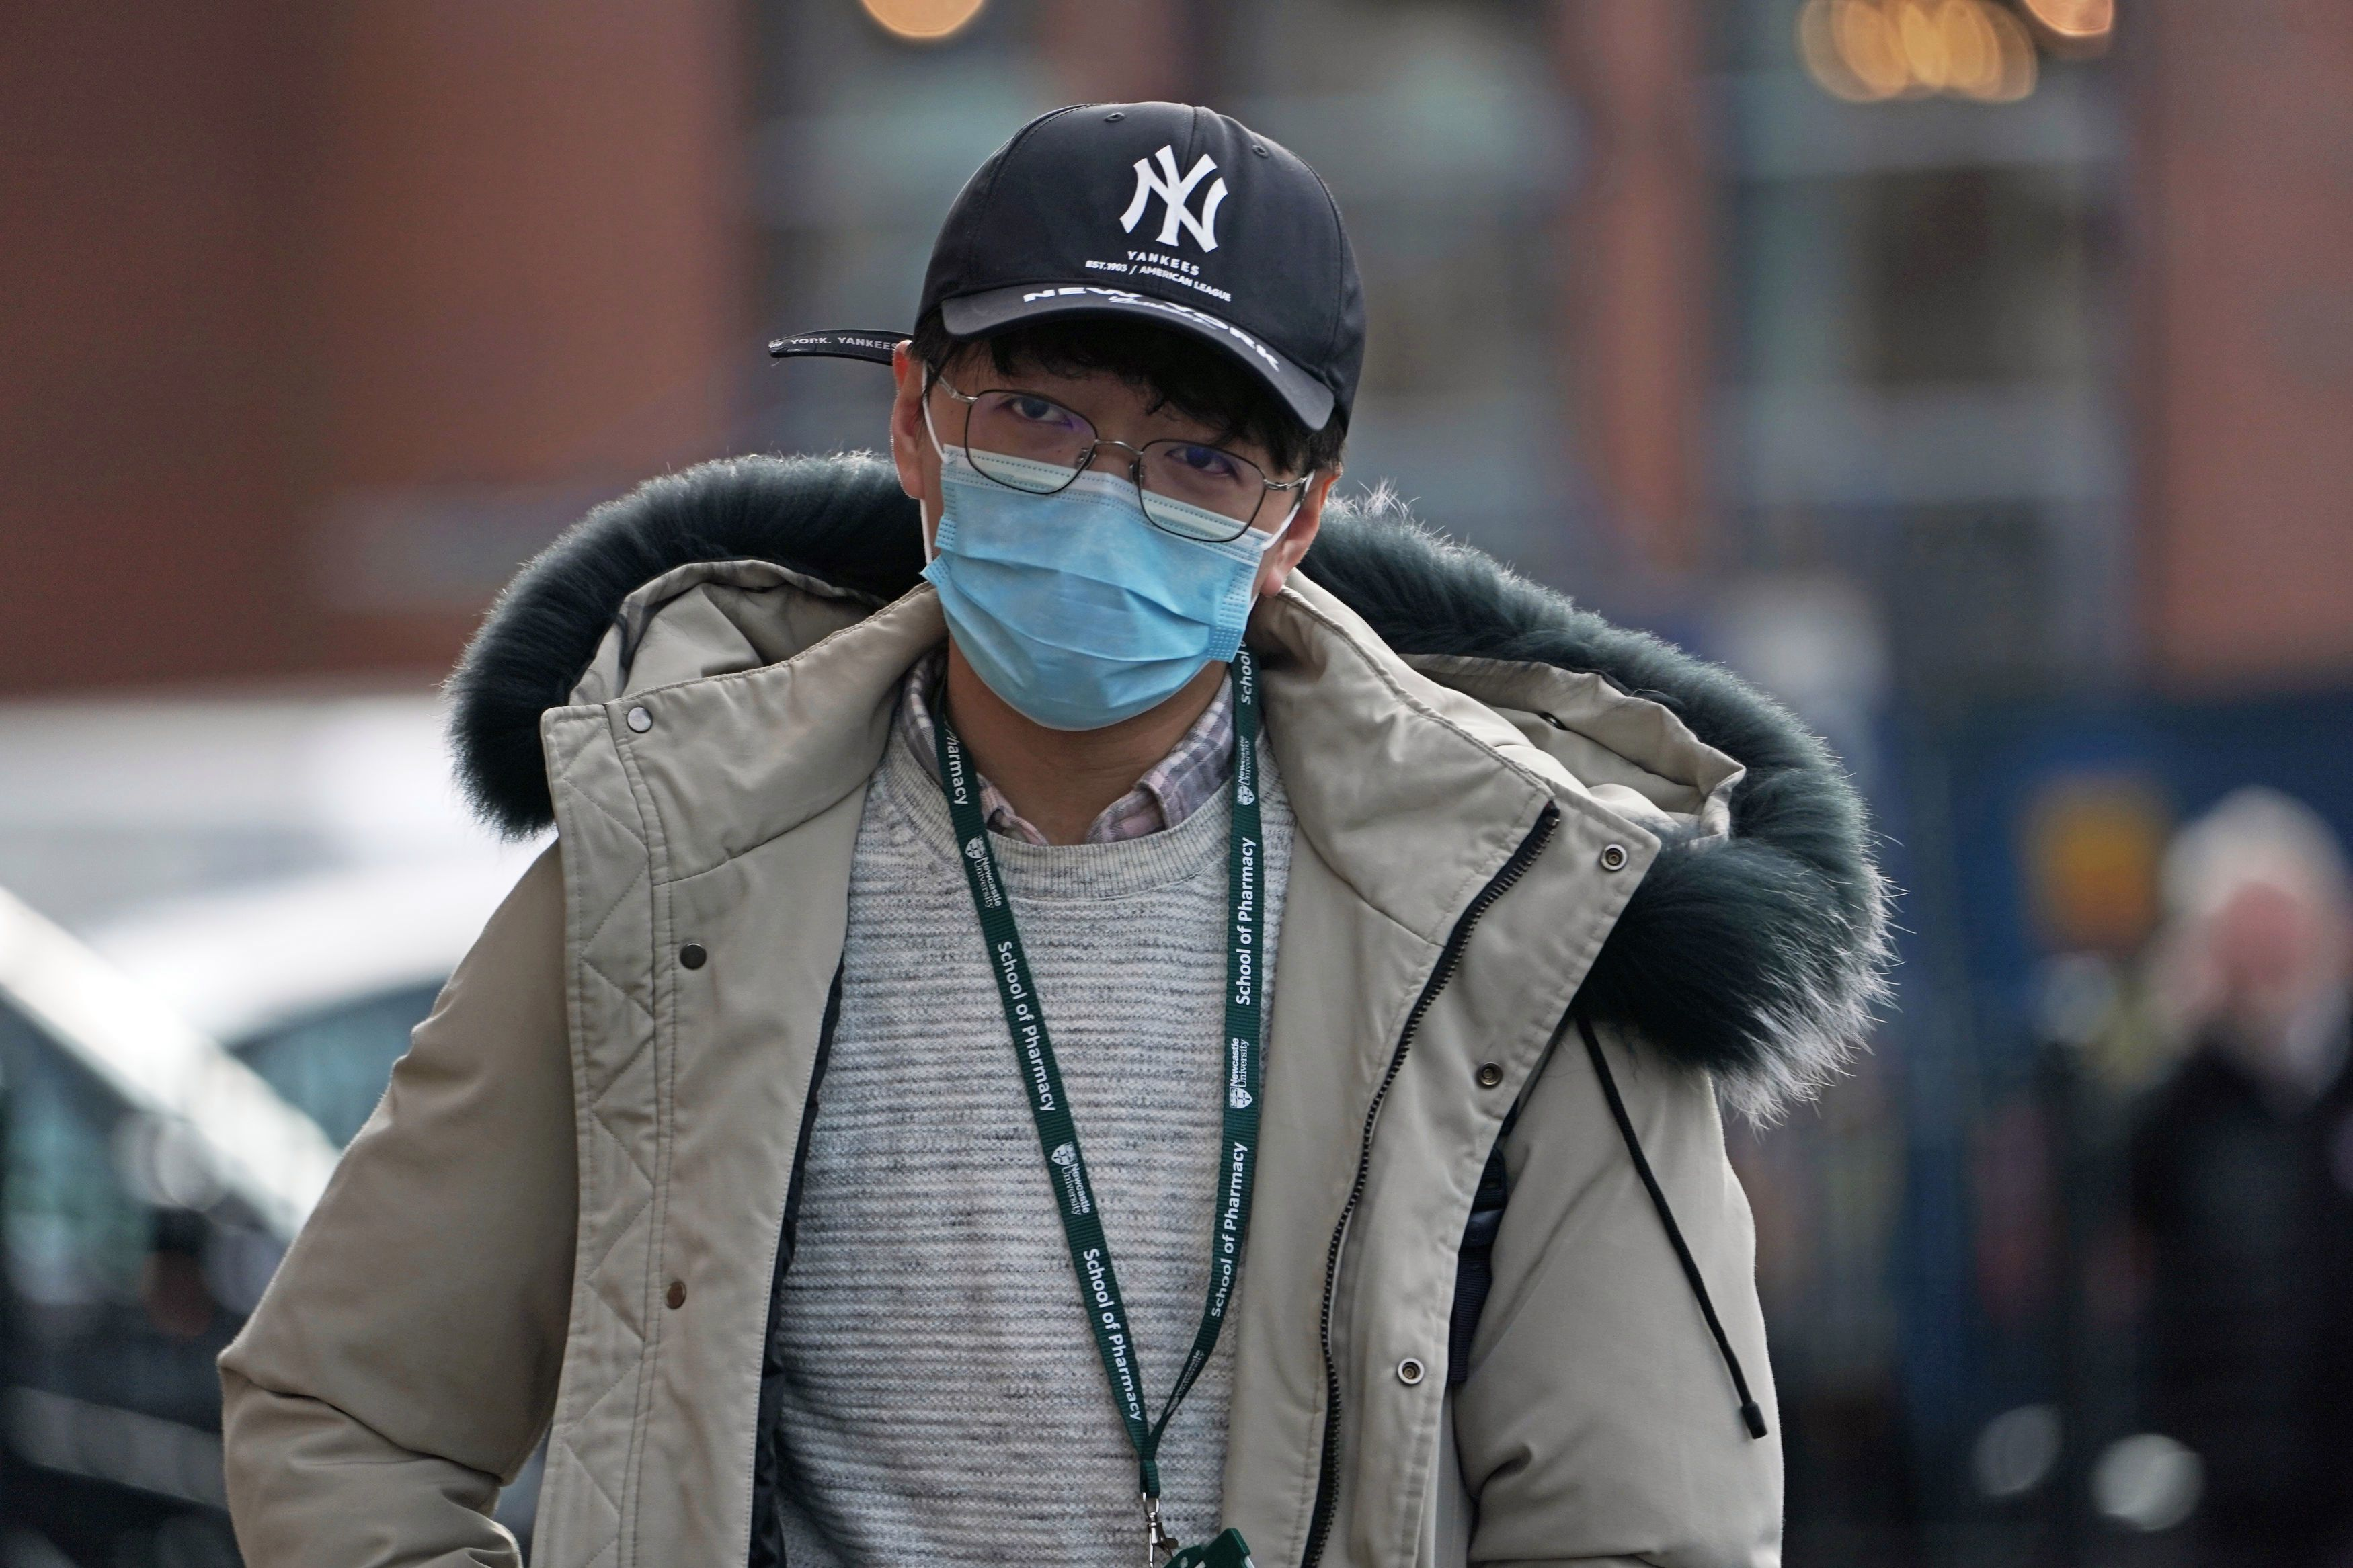 A man wears a mask in Newcastle upon Tyne, near where two patients who have tested positive for coronavirus